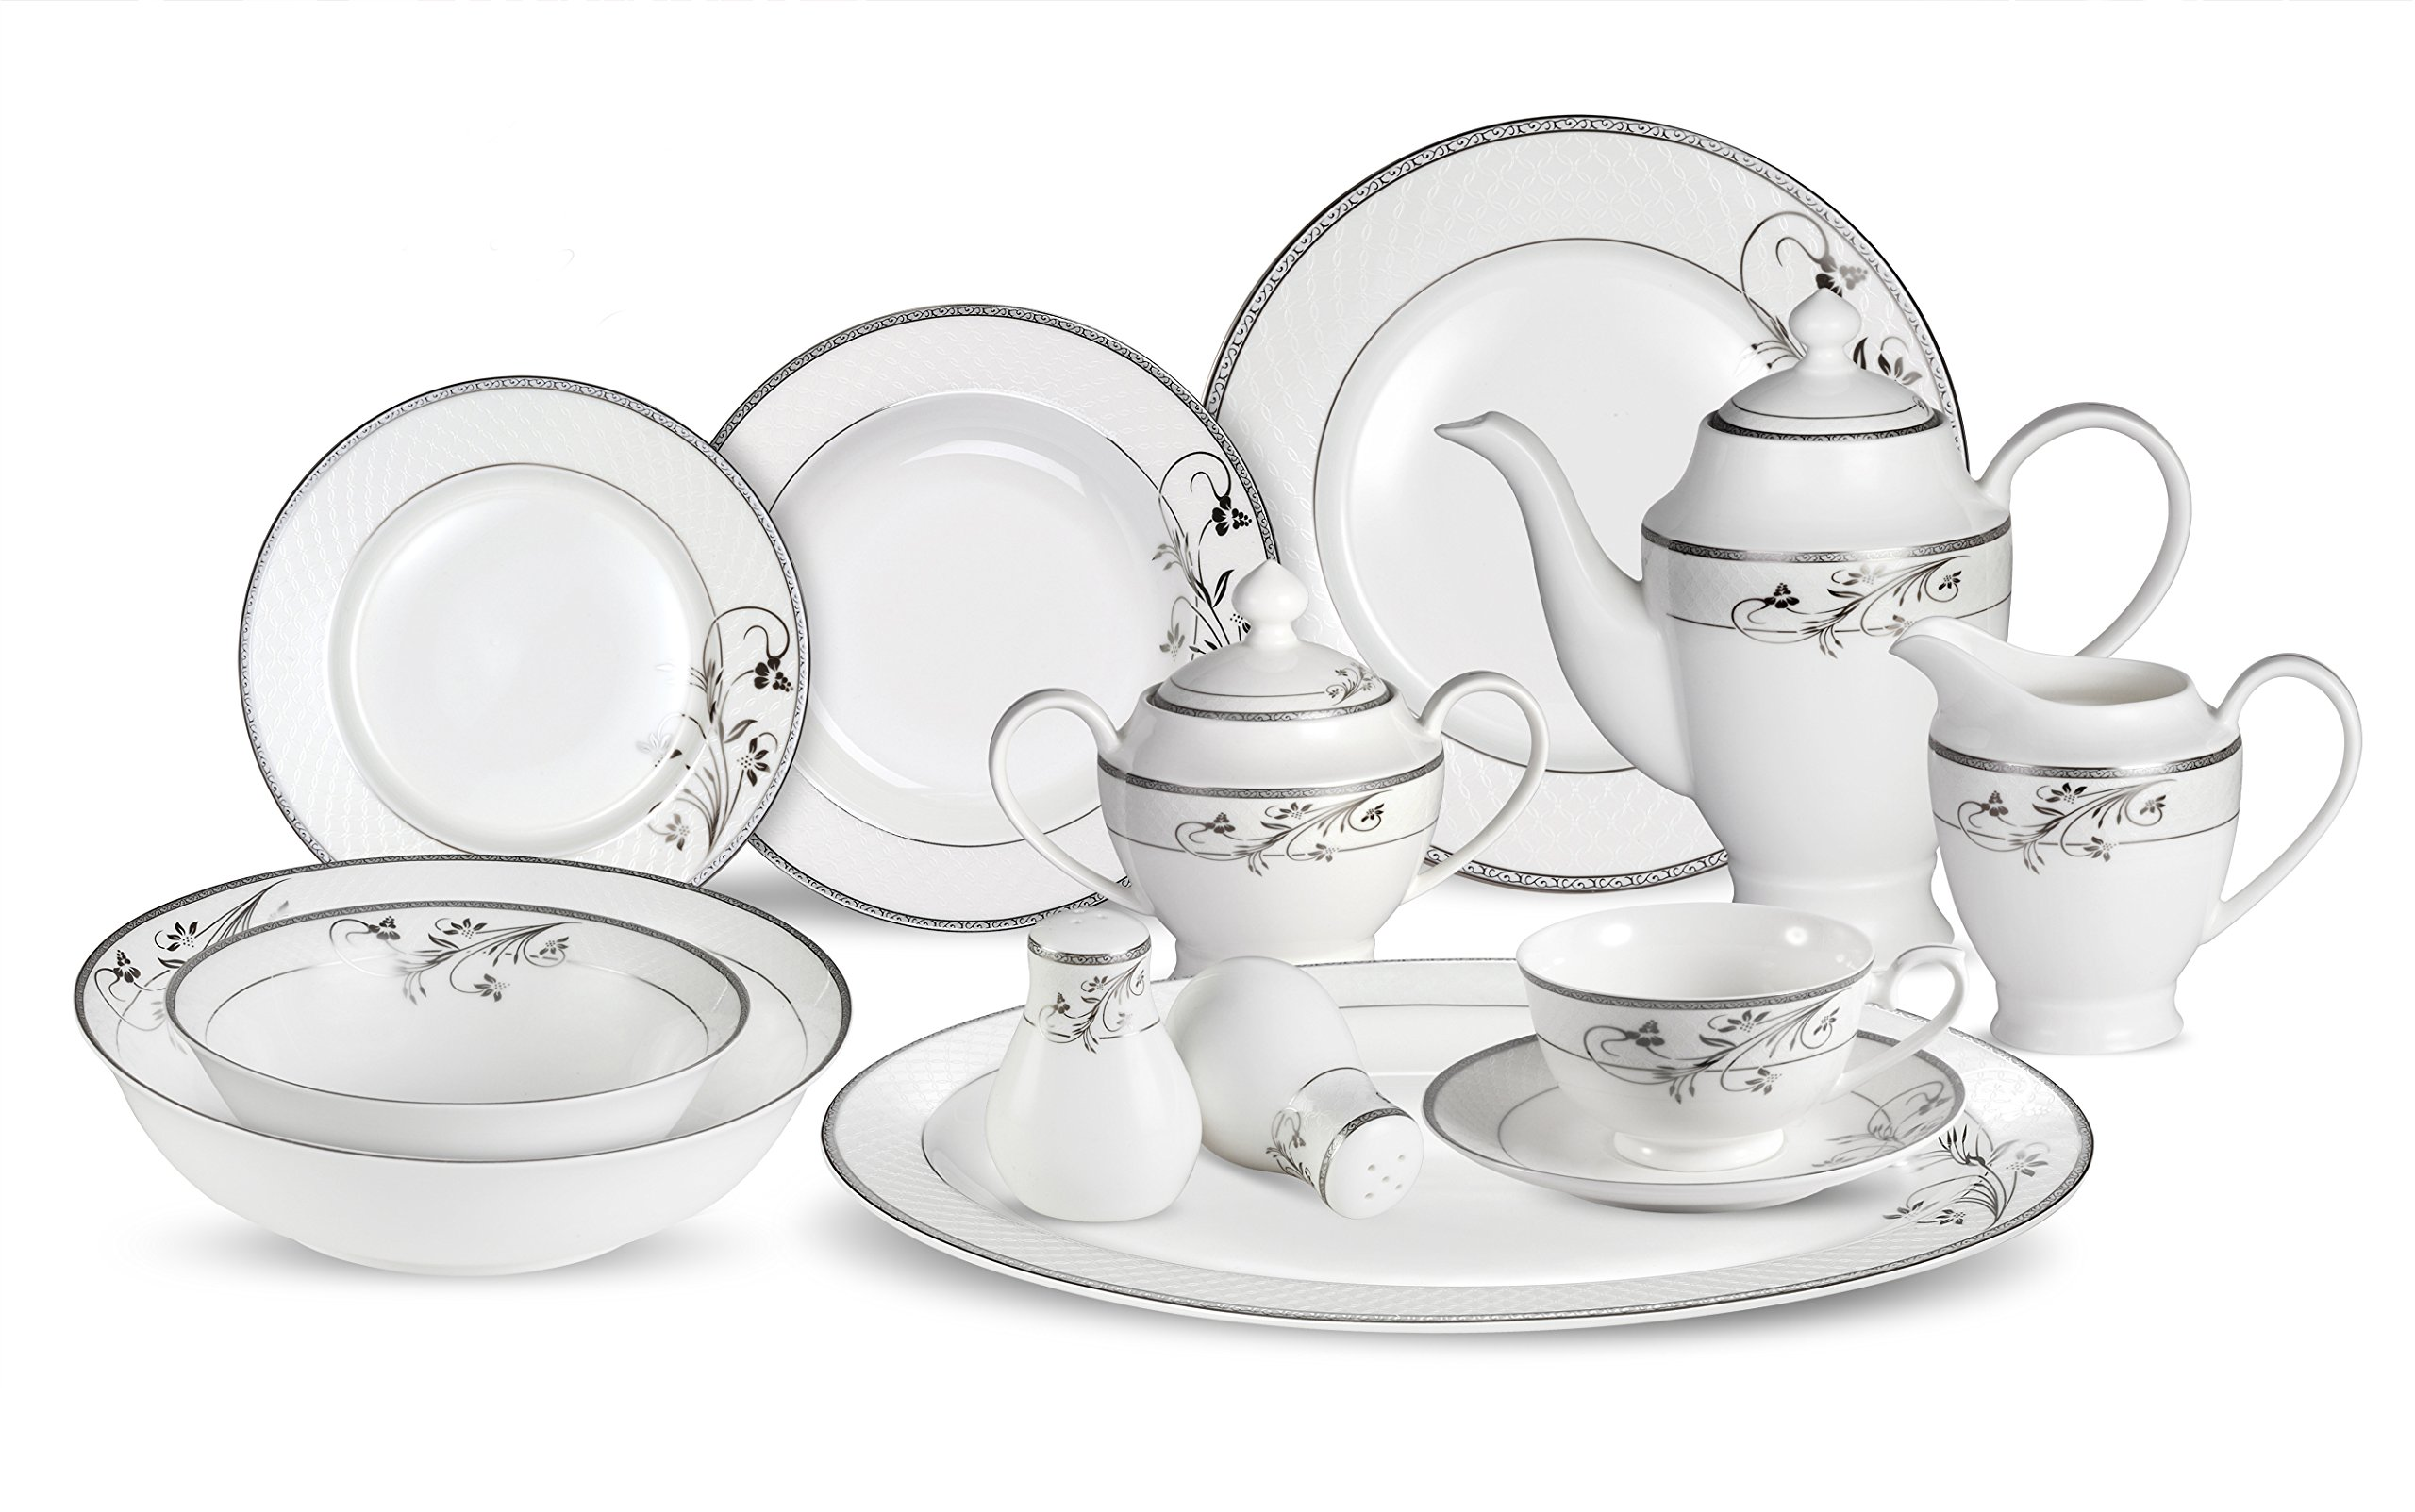 Lorenzo 57 Piece Elegant Bone China Service for 8 Viola Dinnerware Sets, Silver - 6 Piece Place Setting Translucent Bone China Includes Serving Pieces - kitchen-tabletop, kitchen-dining-room, dinnerware-sets - 81Mc5zq9XrL -